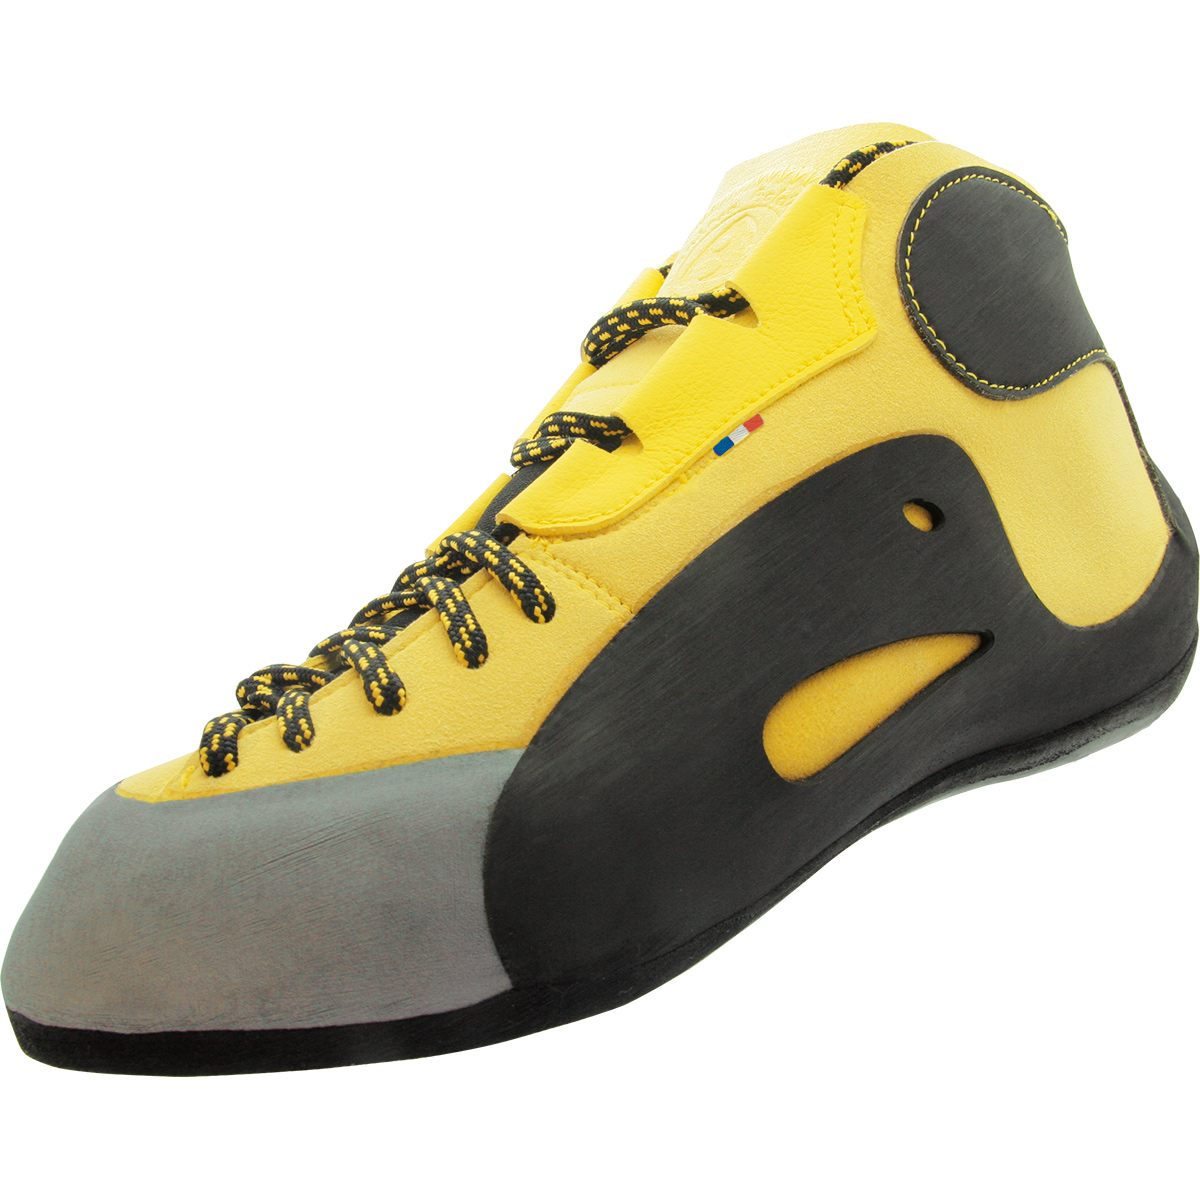 Velcro Or Laces Climbing Shoes